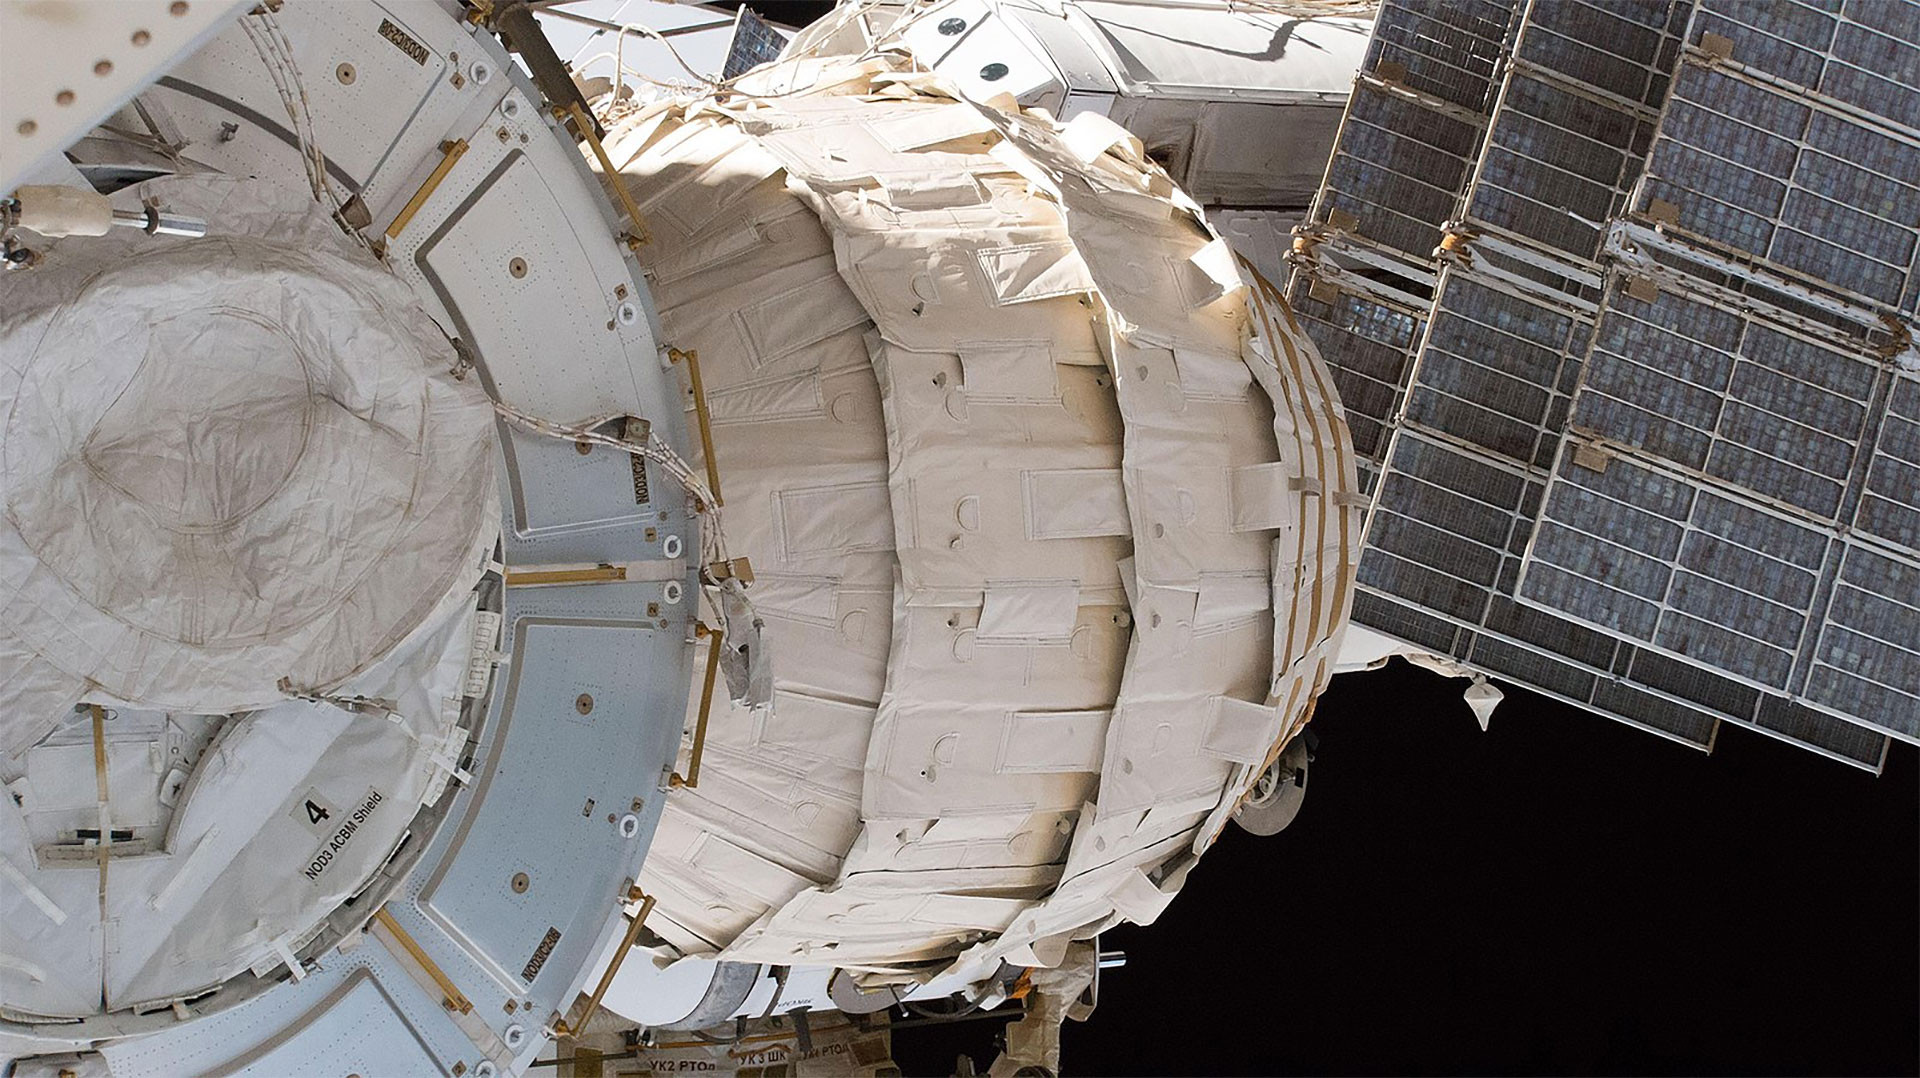 """<p>Фото: &copy; <a href=""""https://commons.wikimedia.org/wiki/File:ISS-51_BEAM_photographed_by_EHDC2.jpg"""" target=""""_blank"""">wikipedia</a></p>"""